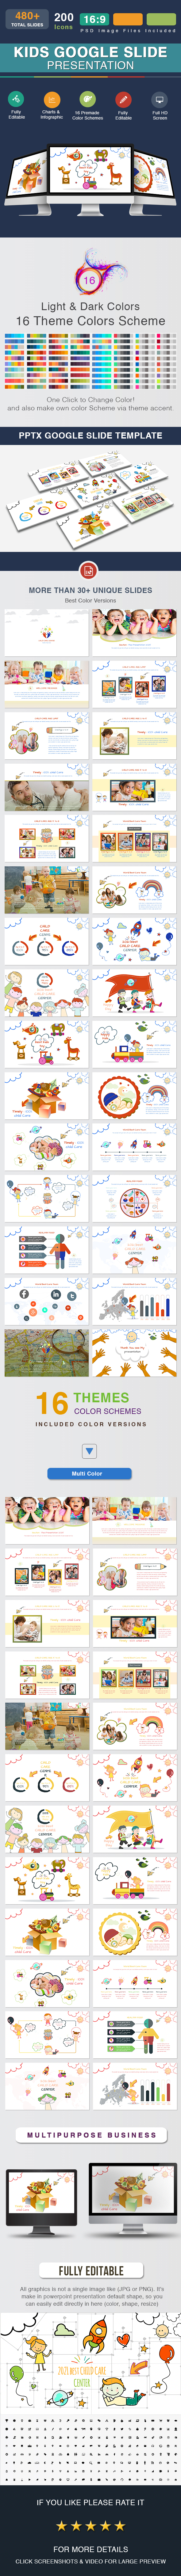 kids Google Slide Presentation Template - Google Slides Presentation Templates